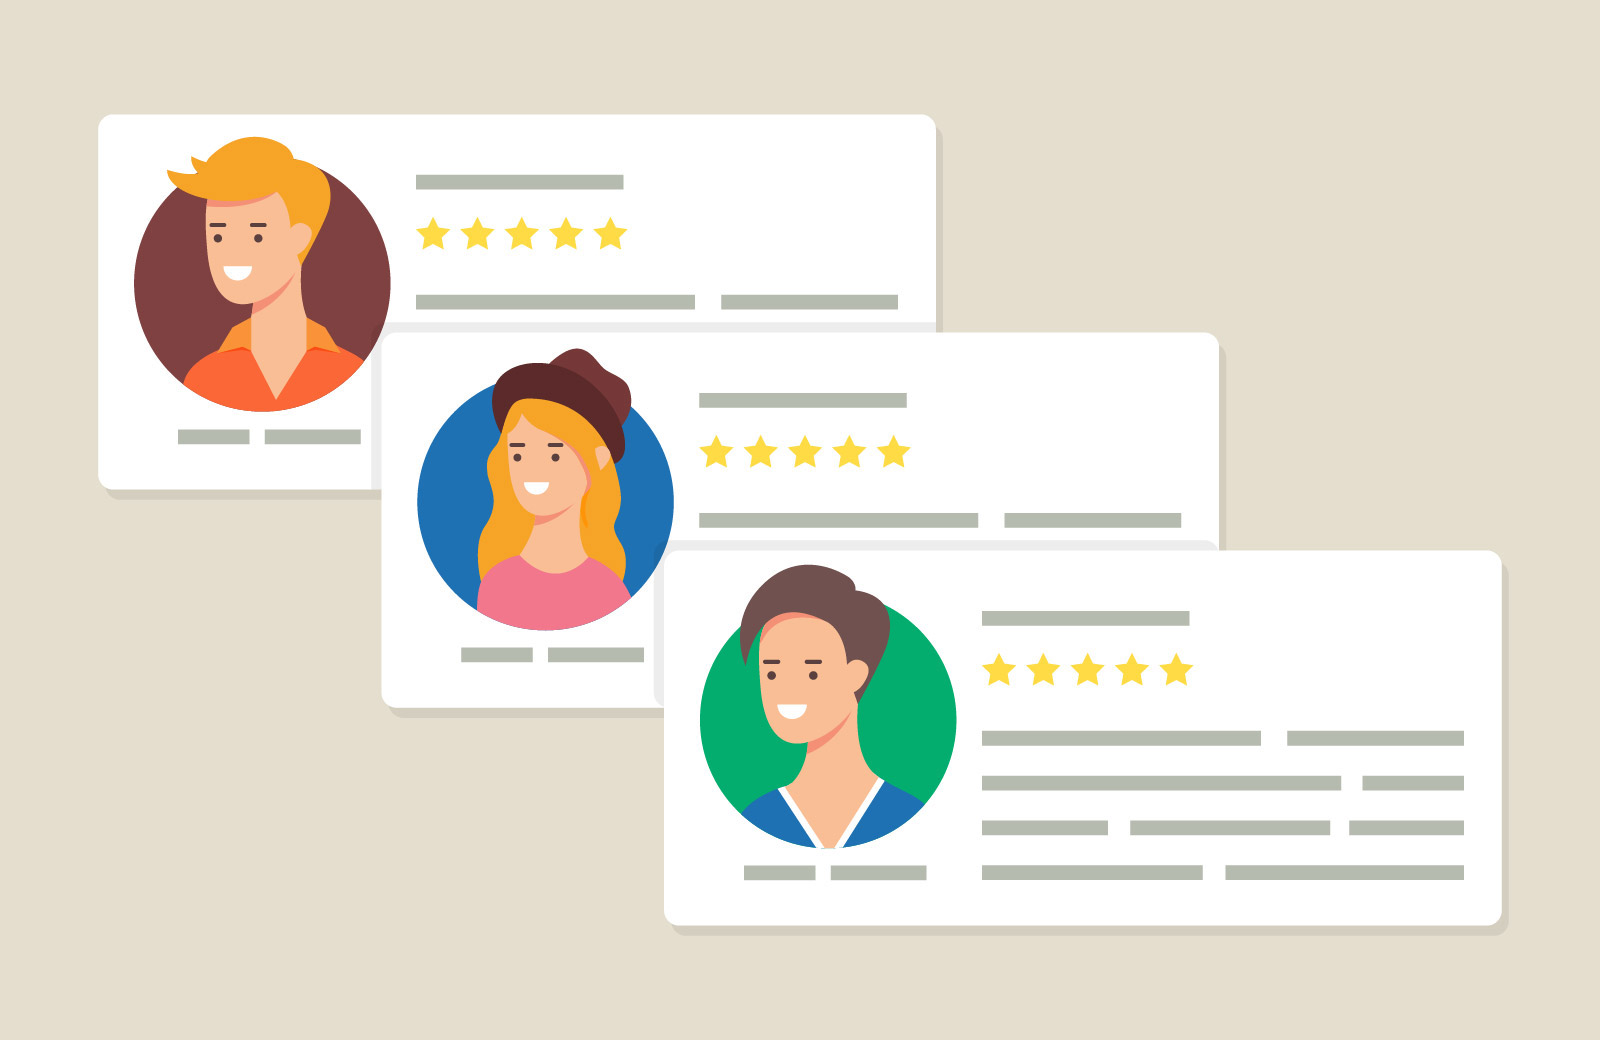 Gaining positive client reviews solidifies your status as an authority